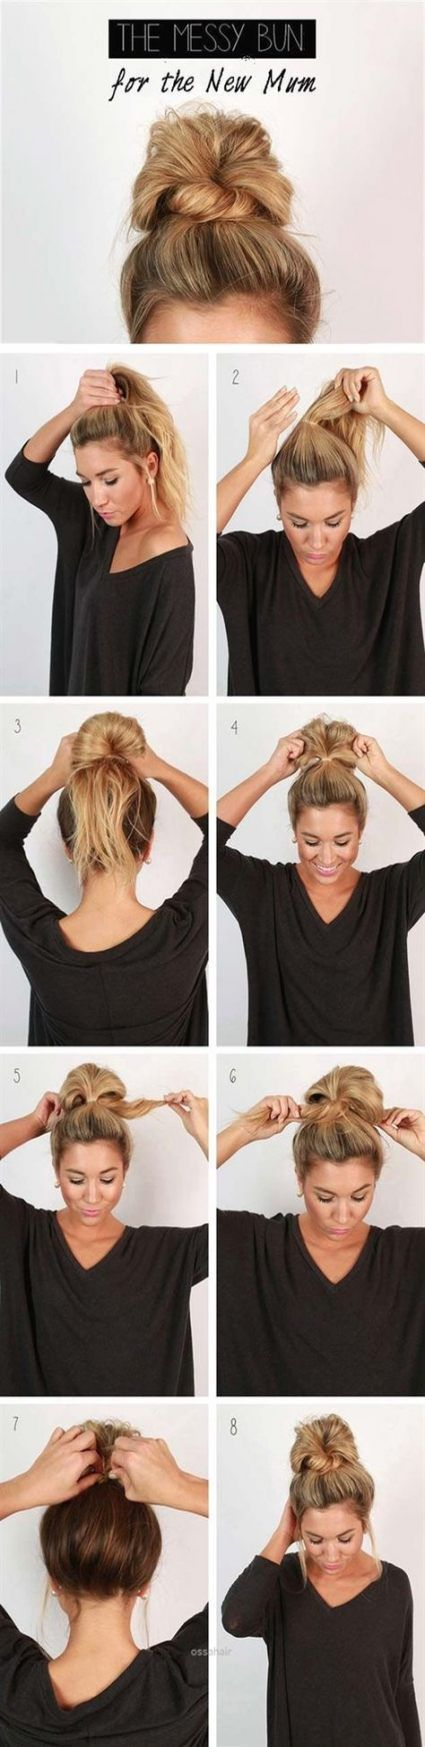 Hairstyles for school messy buns short hair 67+ Ideas – #hairstyles #ideas #messy #school #short